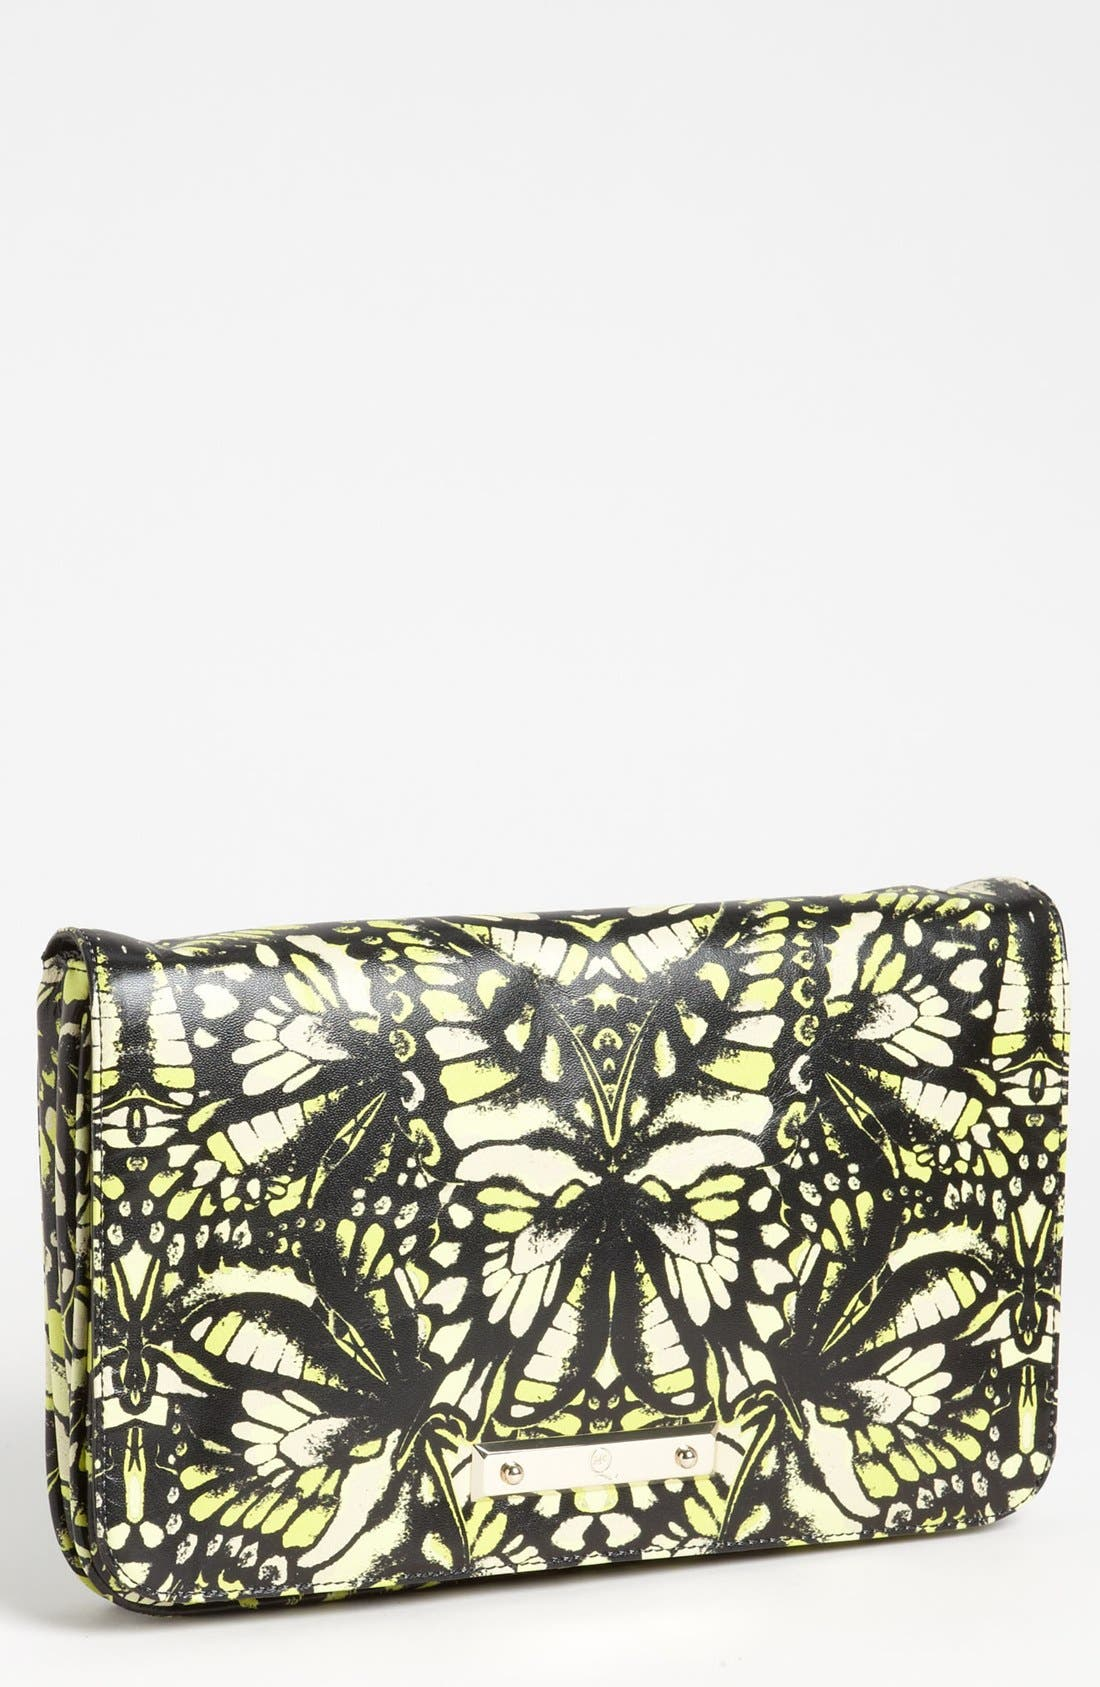 Main Image - McQ by Alexander McQueen 'Metal Plate' Print Leather Clutch